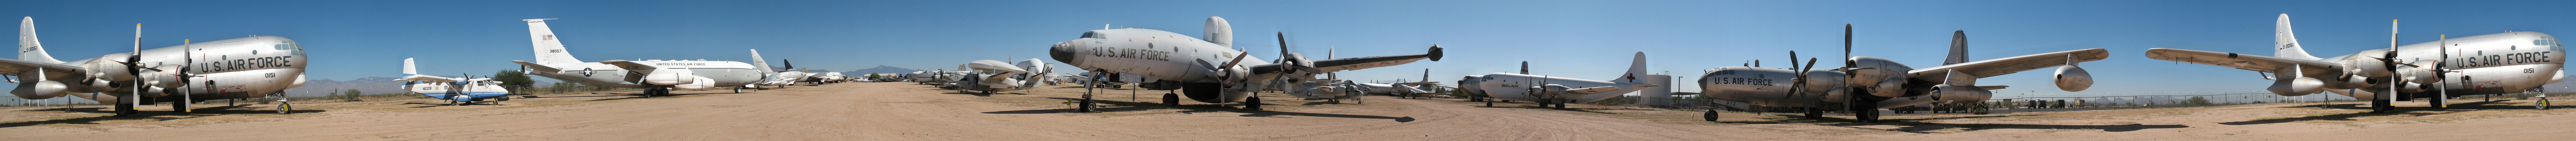 A Panoramic View Of Some Of The Planes At The Pima Air And